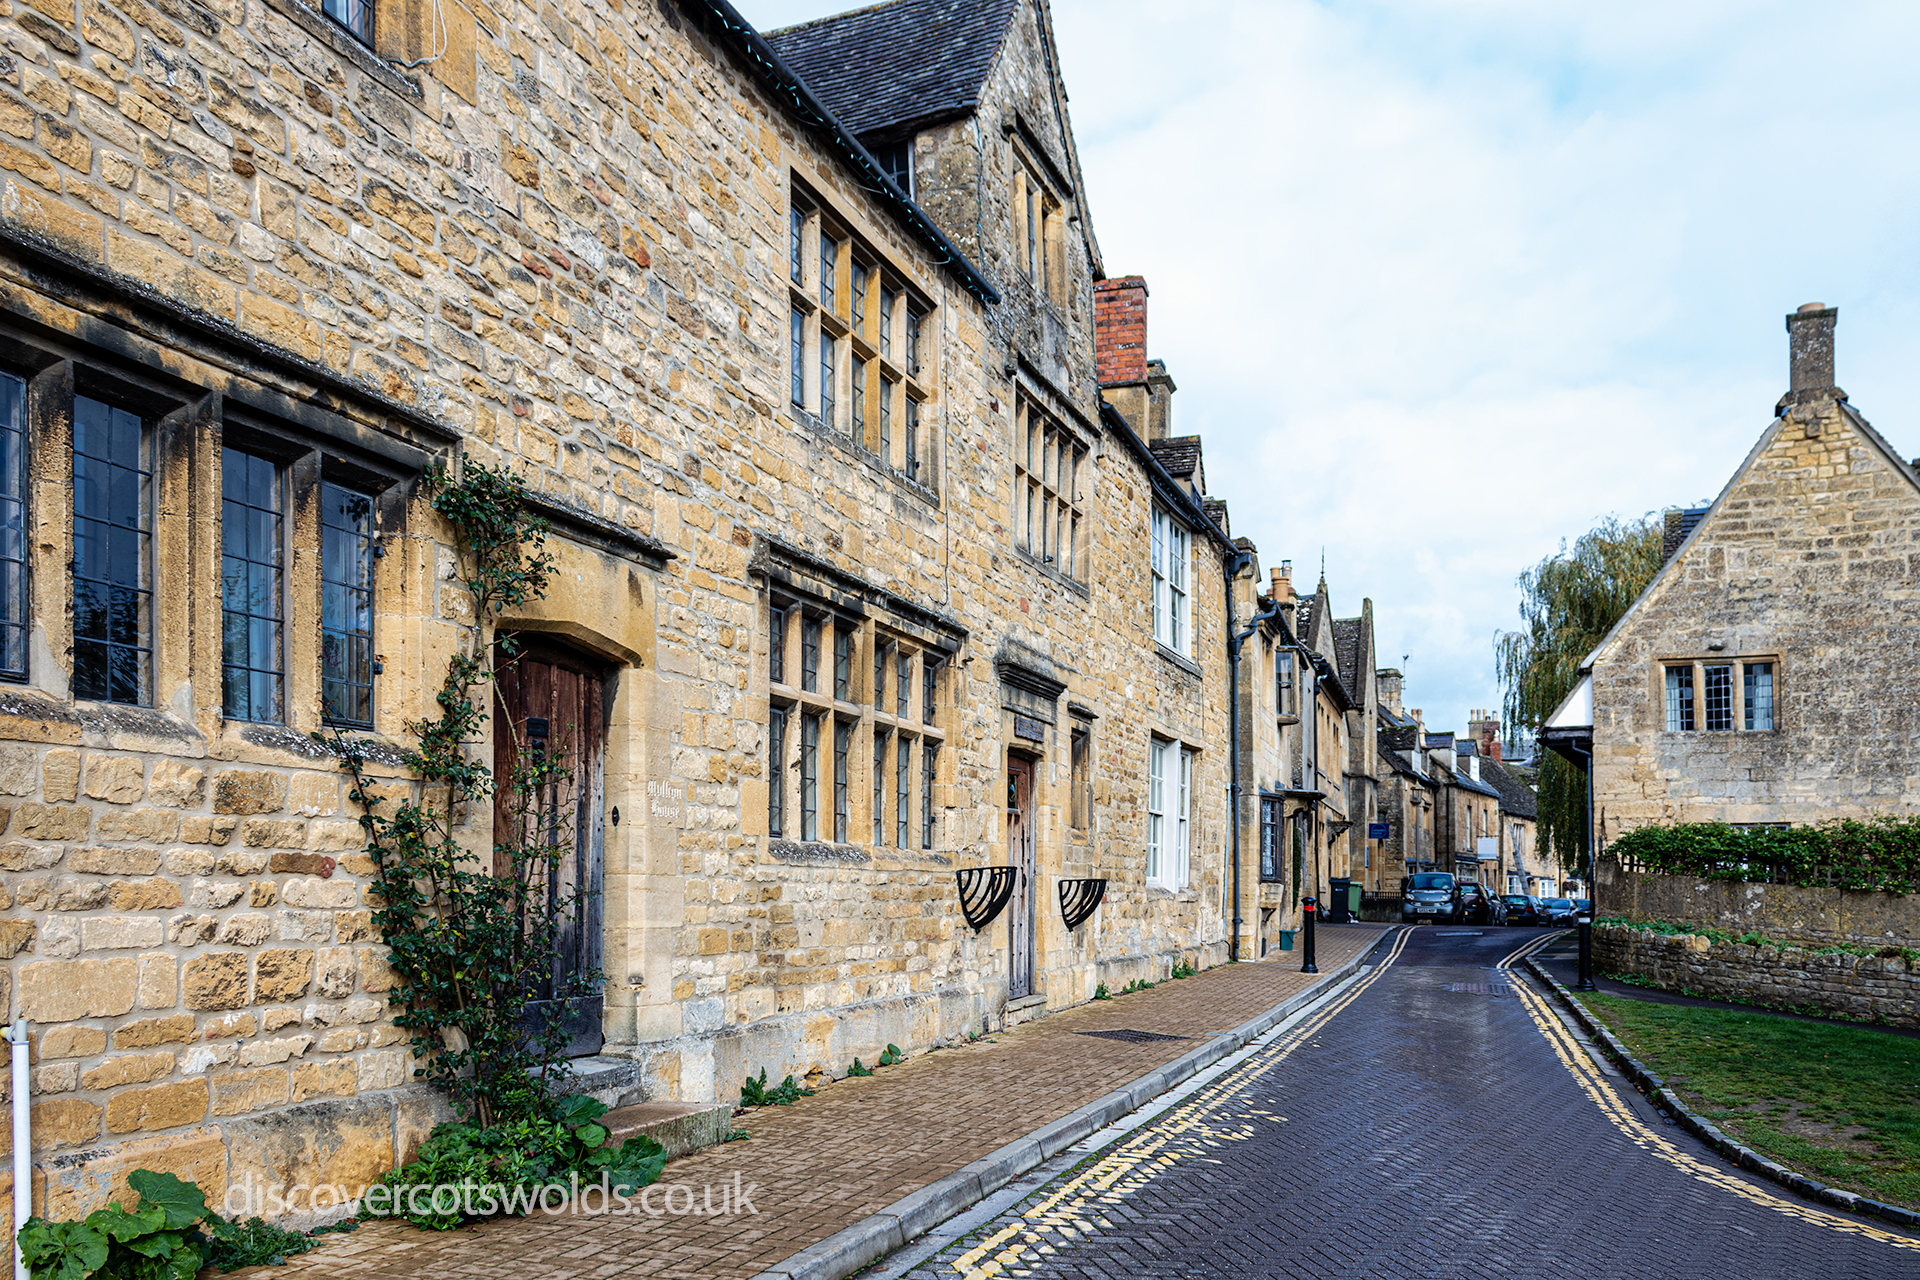 Houses in Chipping Campden